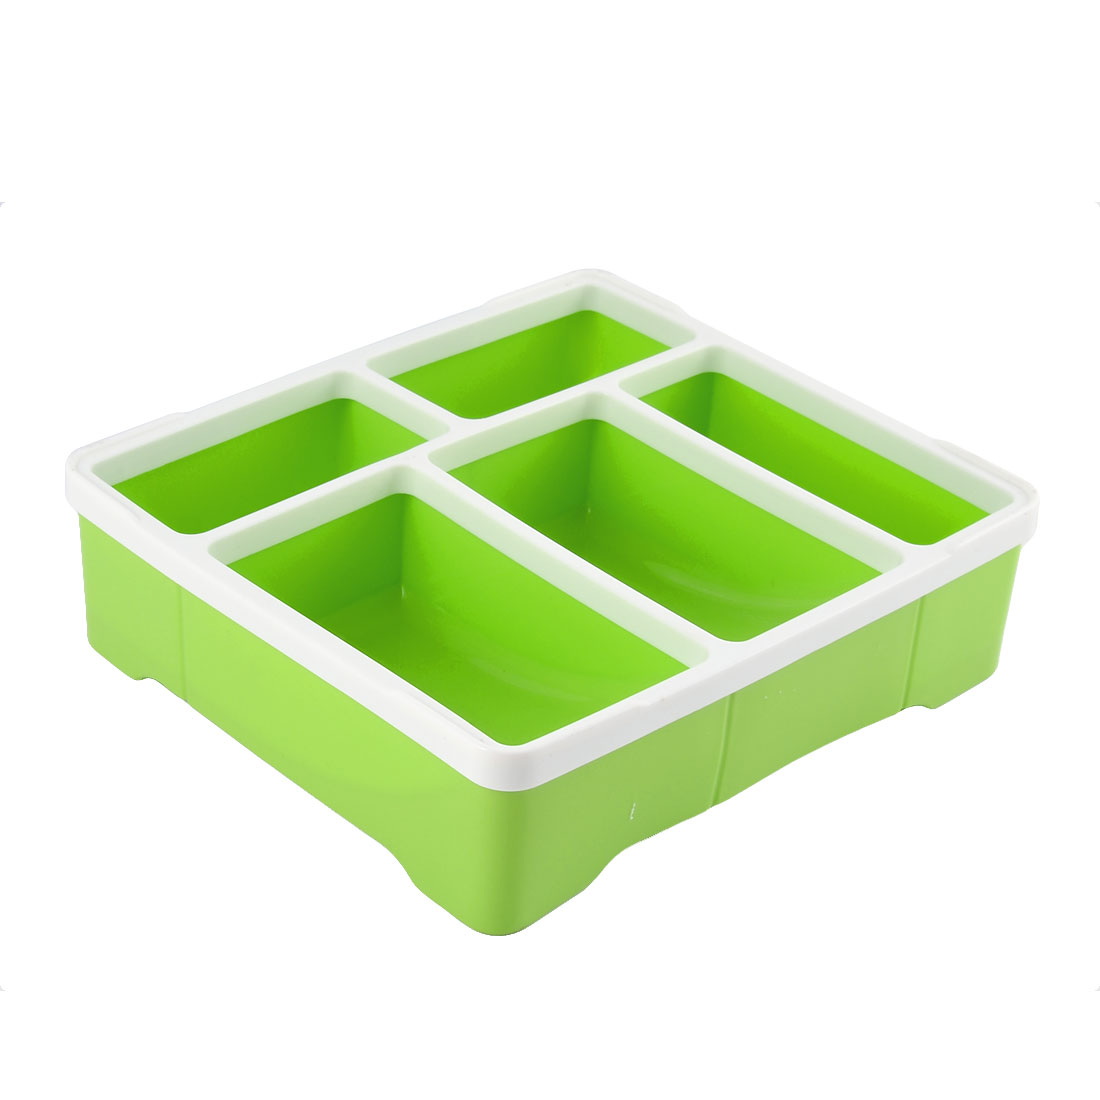 Household Square Sundries Key Plastic Storage Box Case Container Holder Green